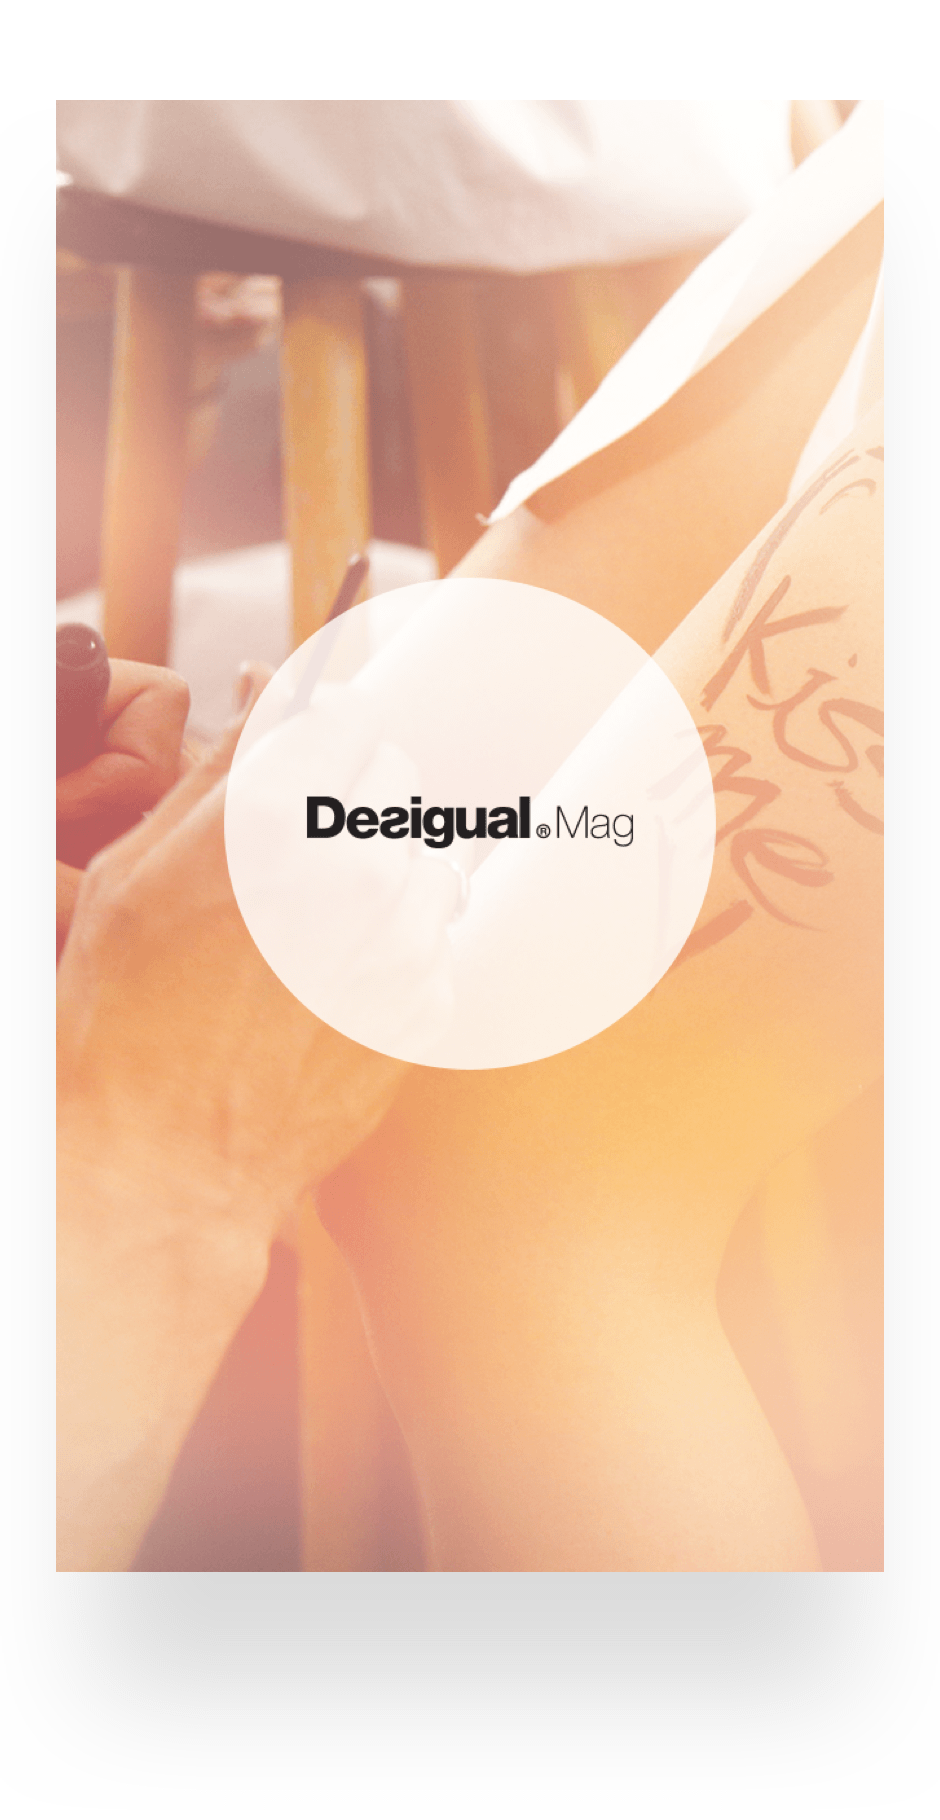 Product-Designer-Barcelona-Digital-UI/UX-Design-Lead